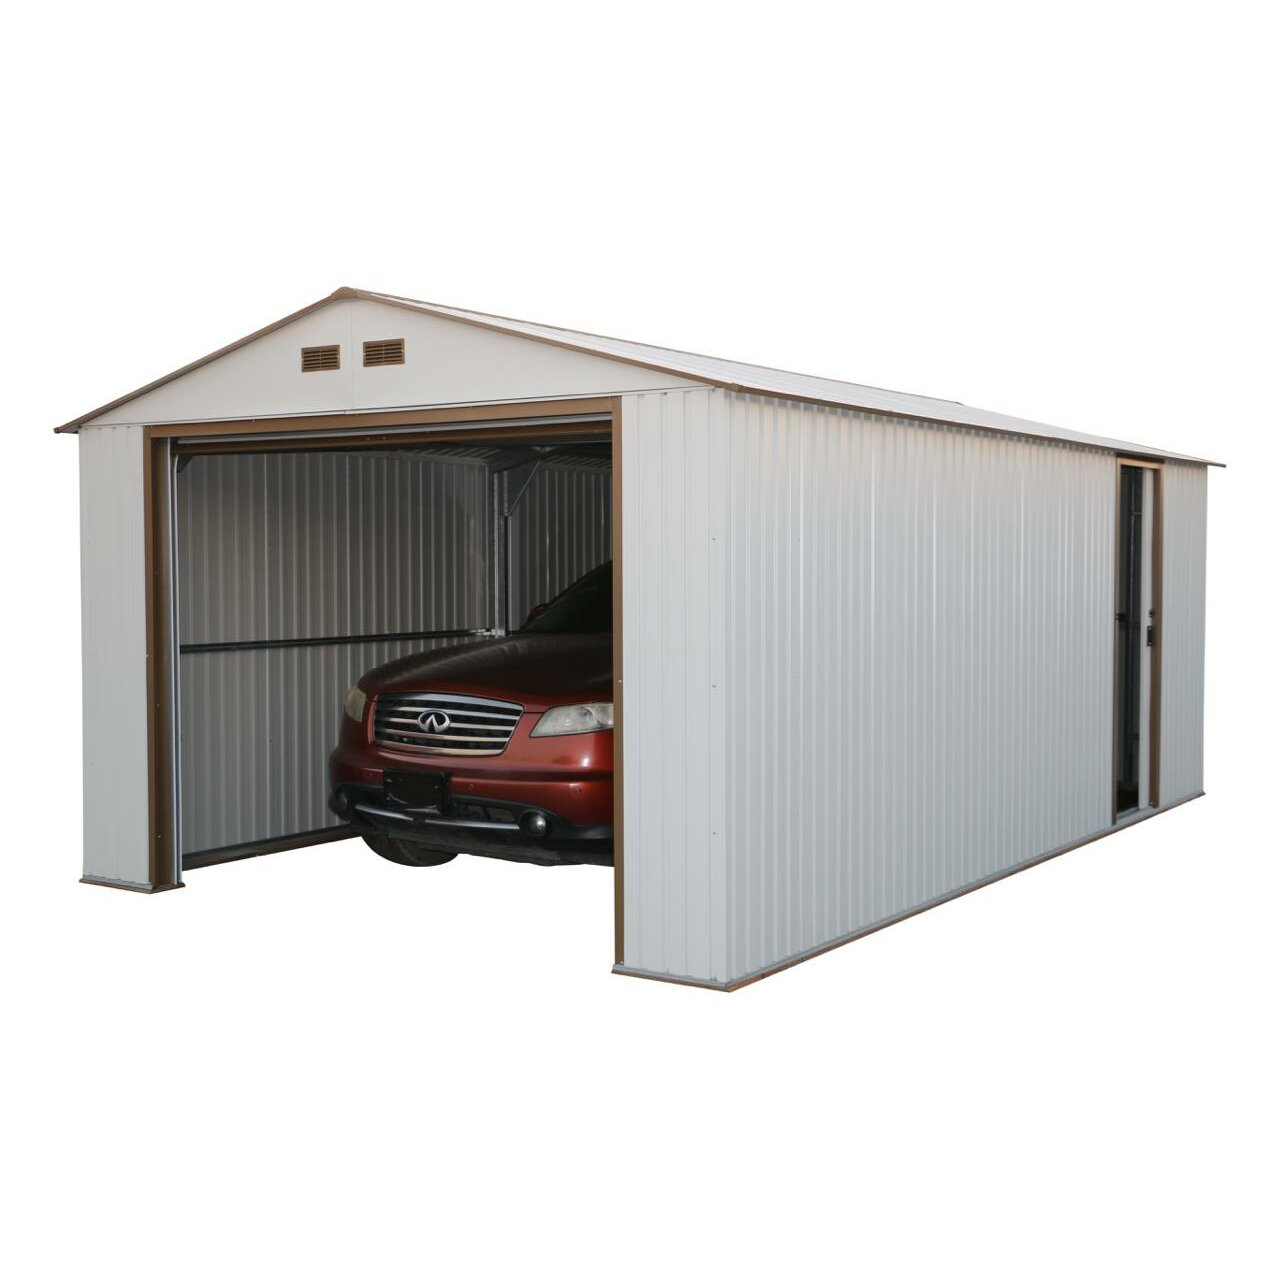 10 20 Garage Shed : Duramax imperial ft w d metal garage shed